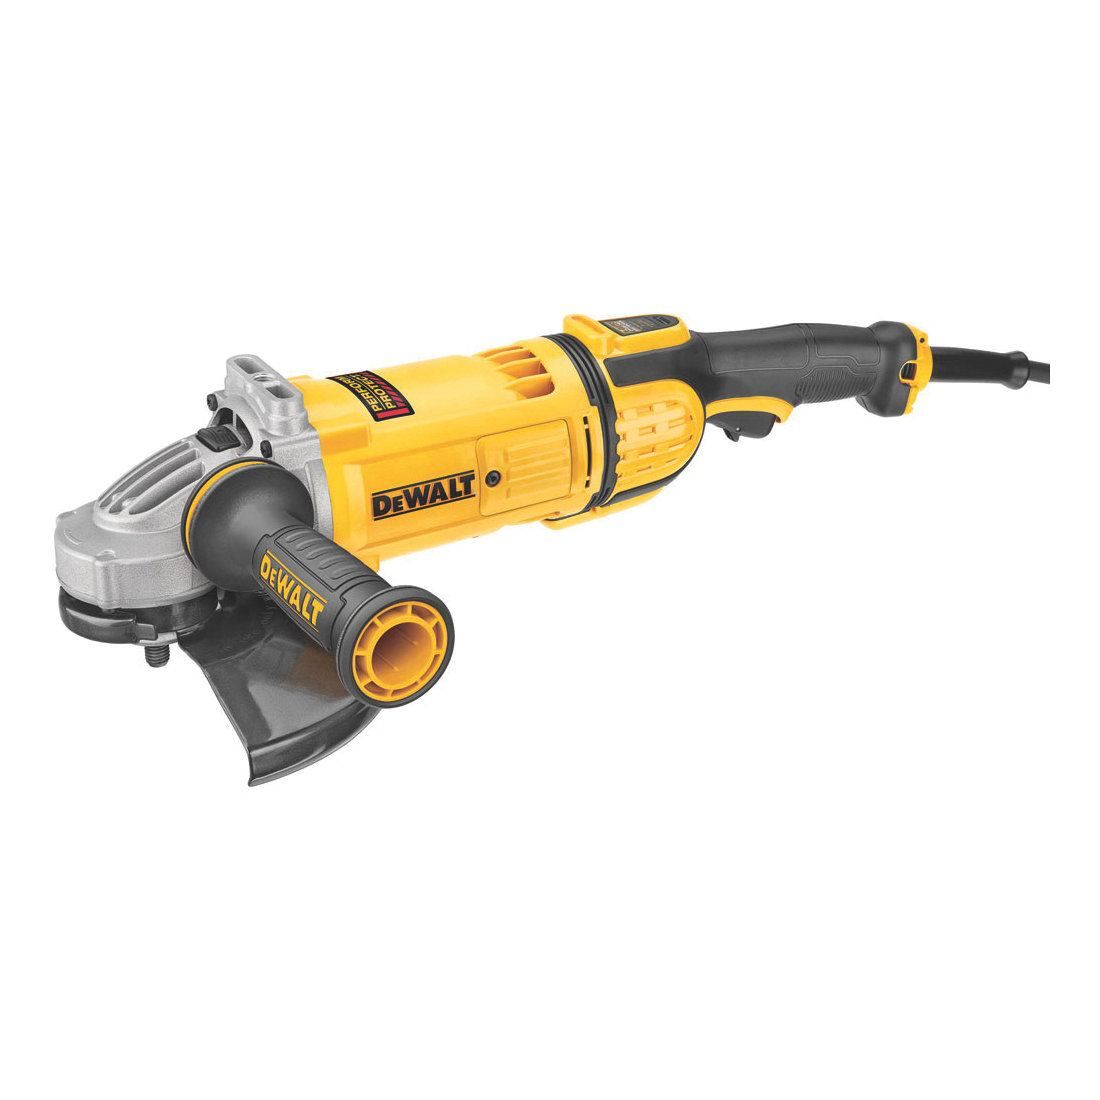 DeWALT® DWE4599N Protect™ Large Angle Grinder, 9 in Dia Wheel, 5/8-11 Arbor/Shank, 120 VAC, Yellow, Yes Dust Management, Lock-Off Trigger Switch Switch, Tool Only